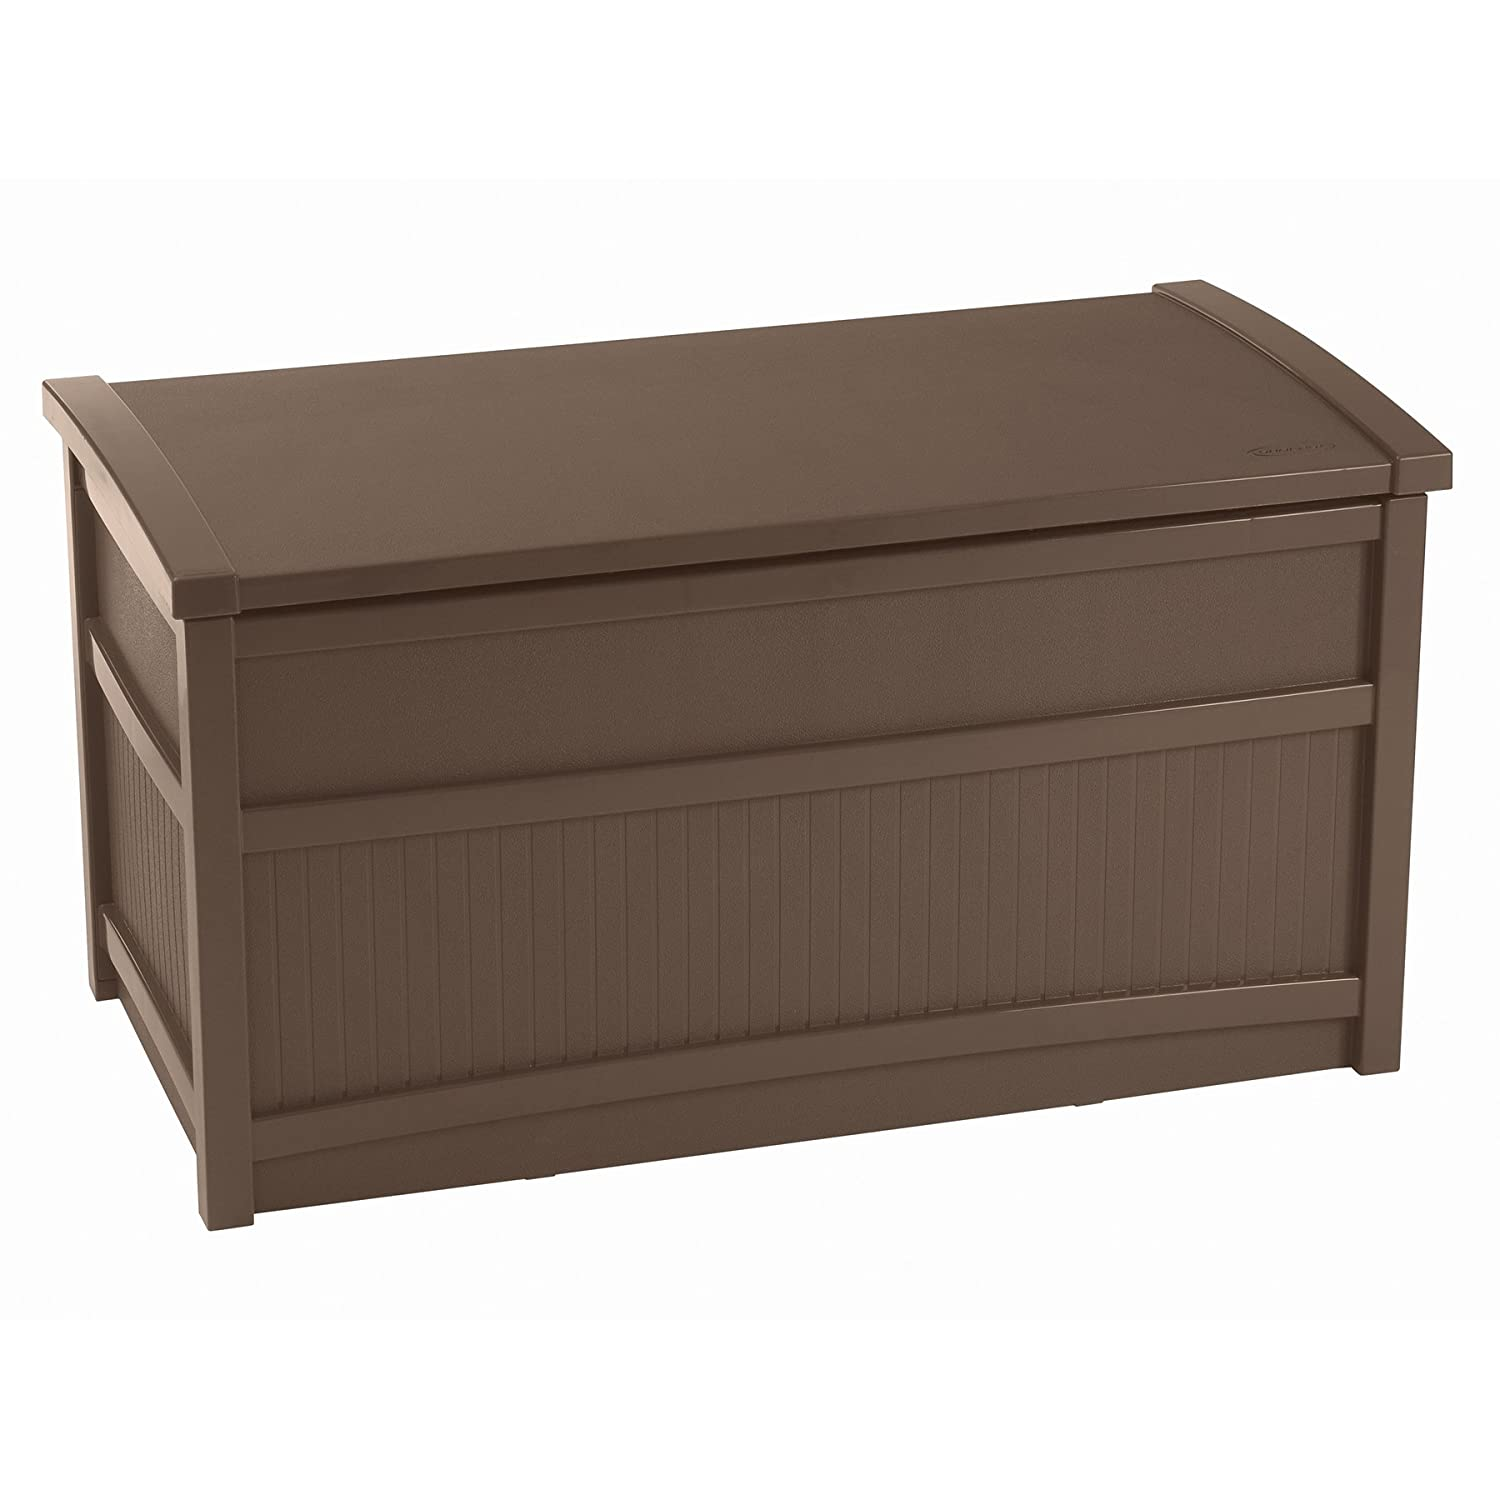 Amazing Amazon.com : Suncast DB5000B Deck Box, 50 Gallon : Outdoor Storage Benches  : Patio, Lawn U0026 Garden